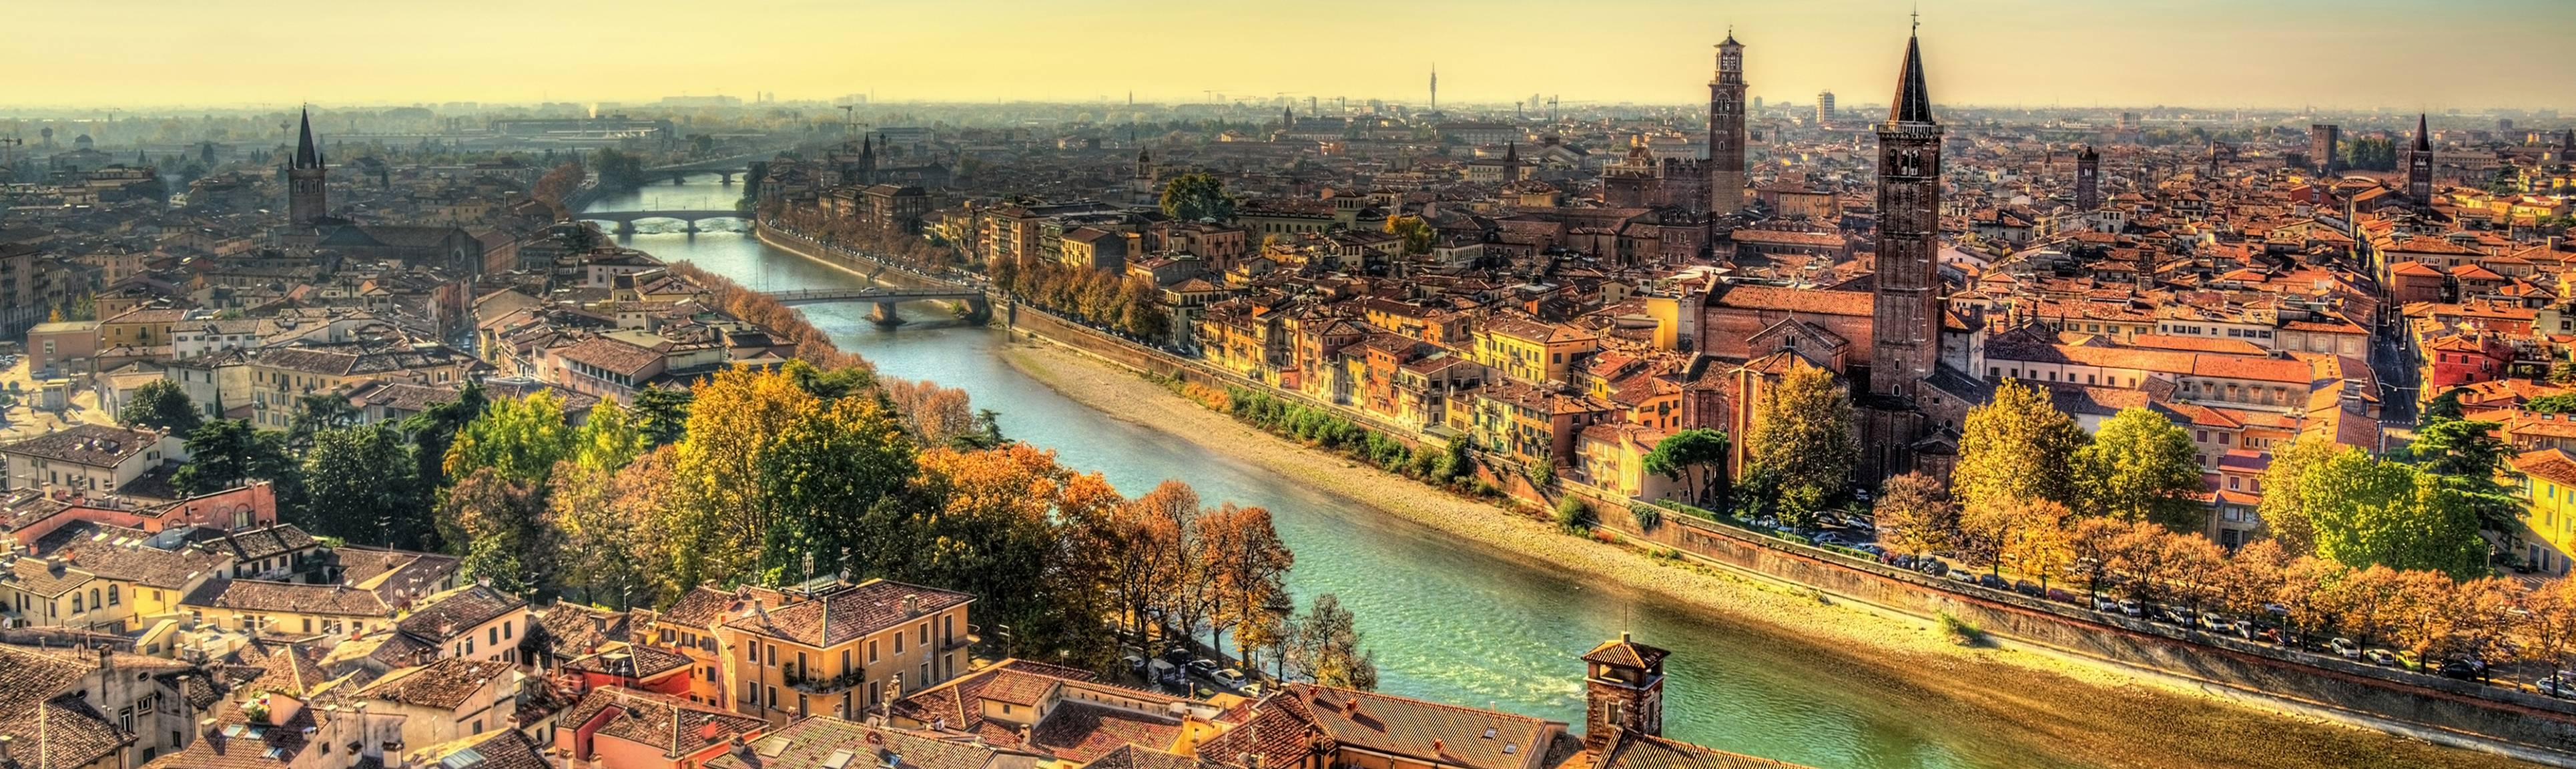 Bird's eye view of the river and Verona, Italy